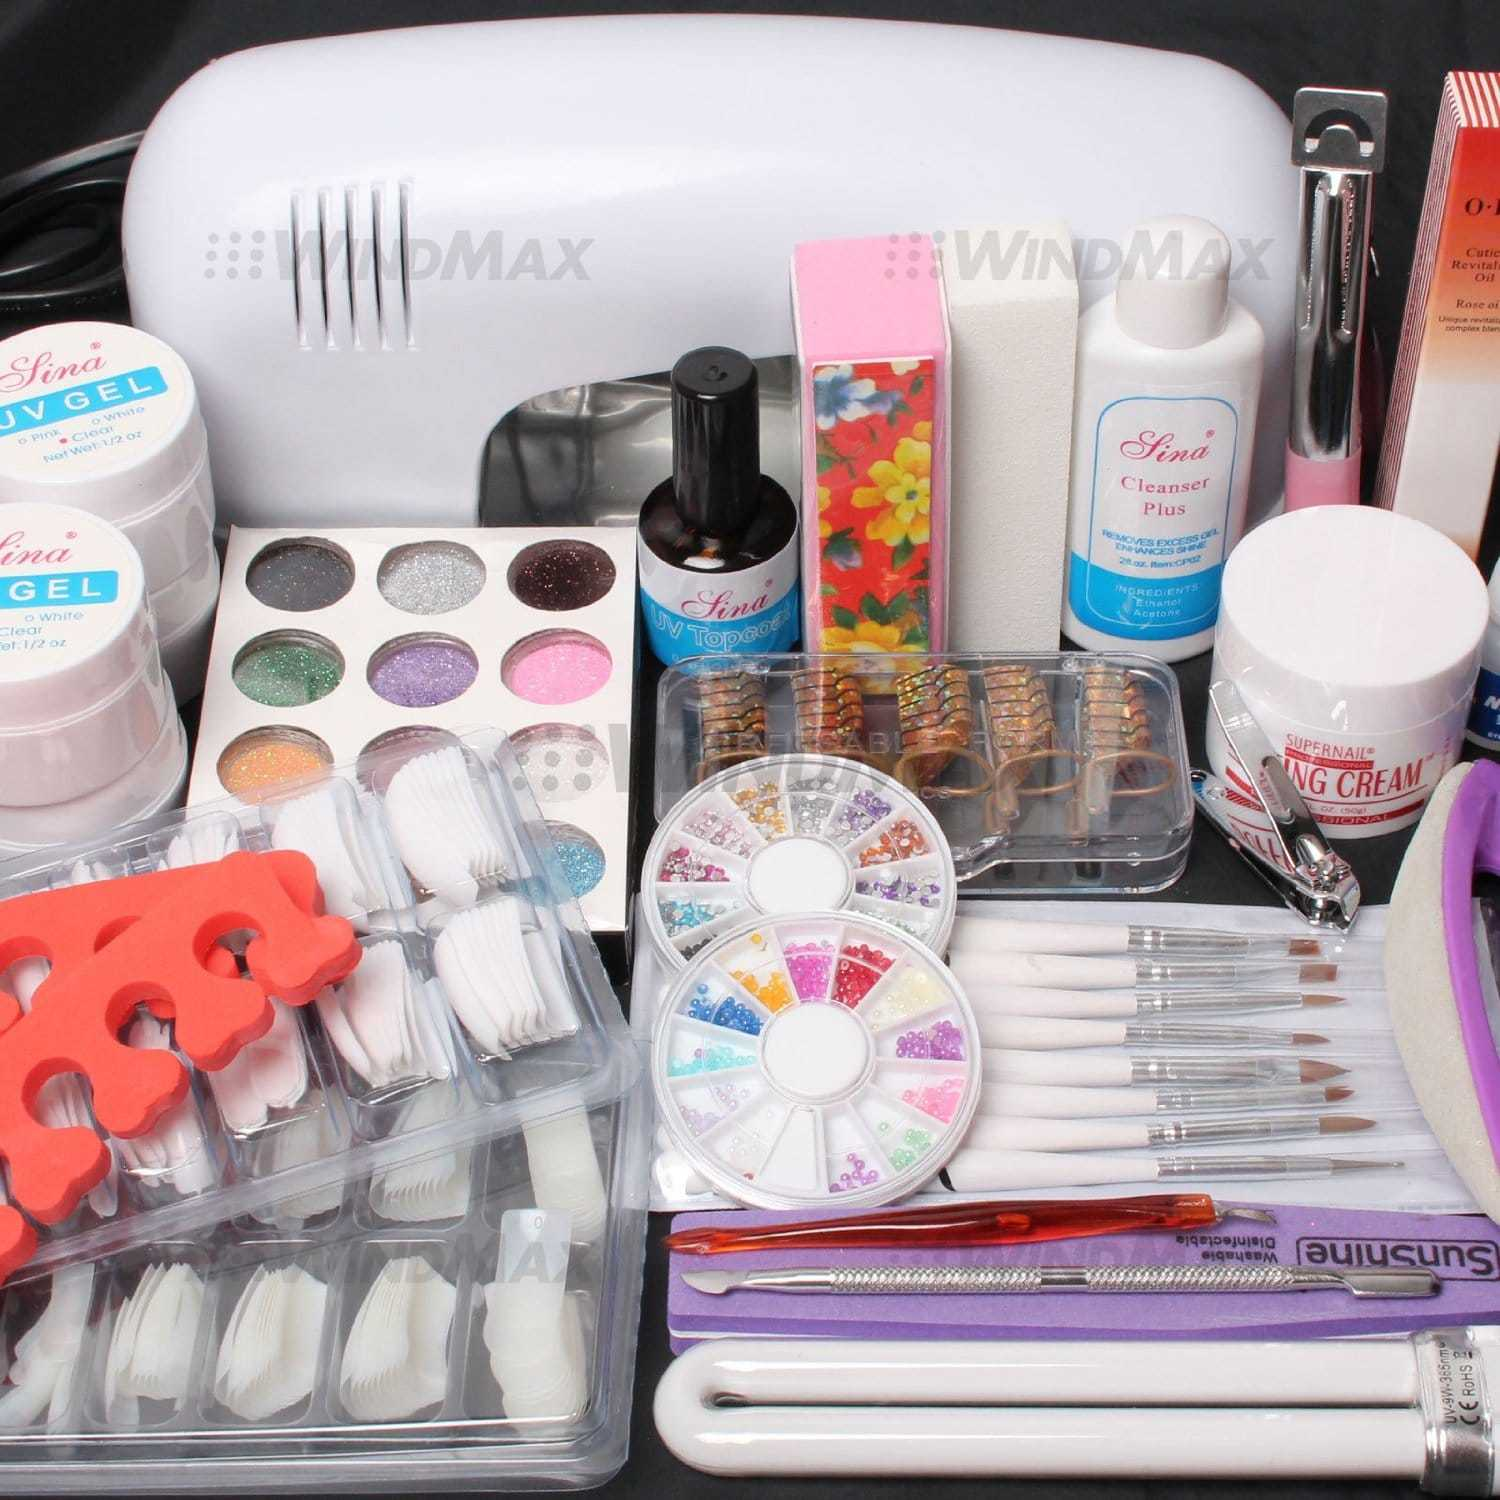 christmas gift ideas for sister - UV gel nail art kit